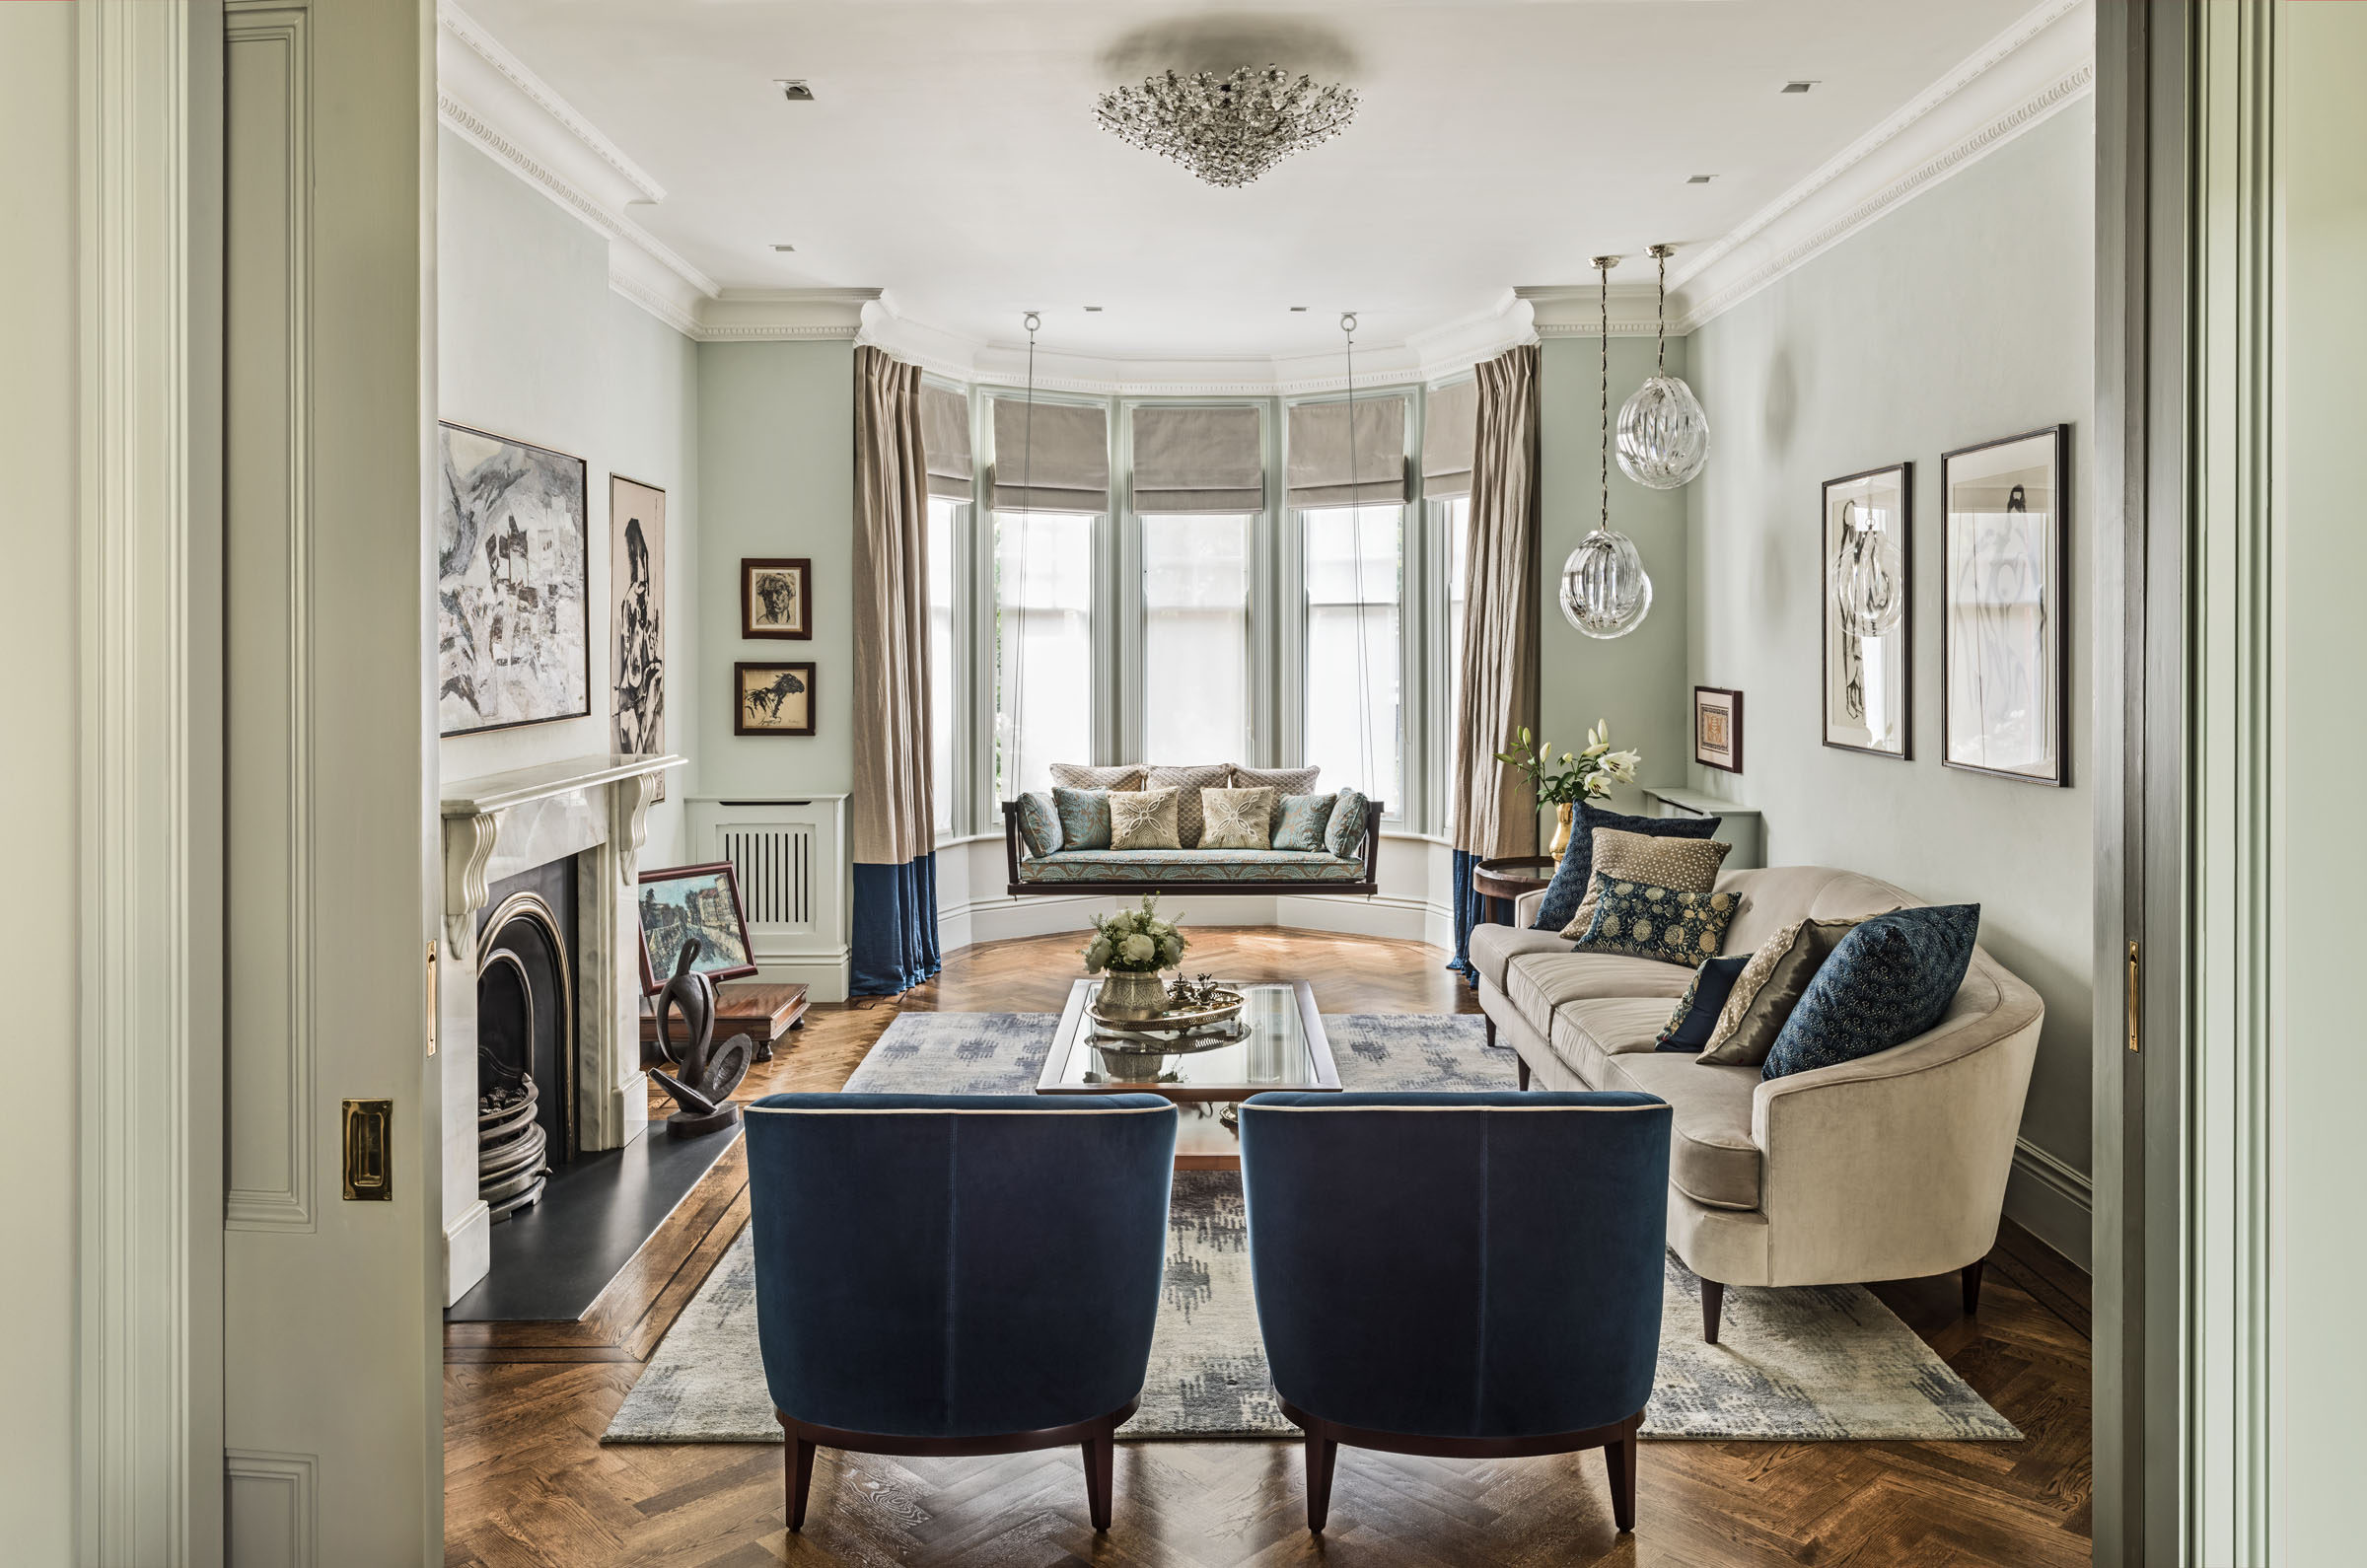 South hampstead house london luxury interior design for Home interior design london